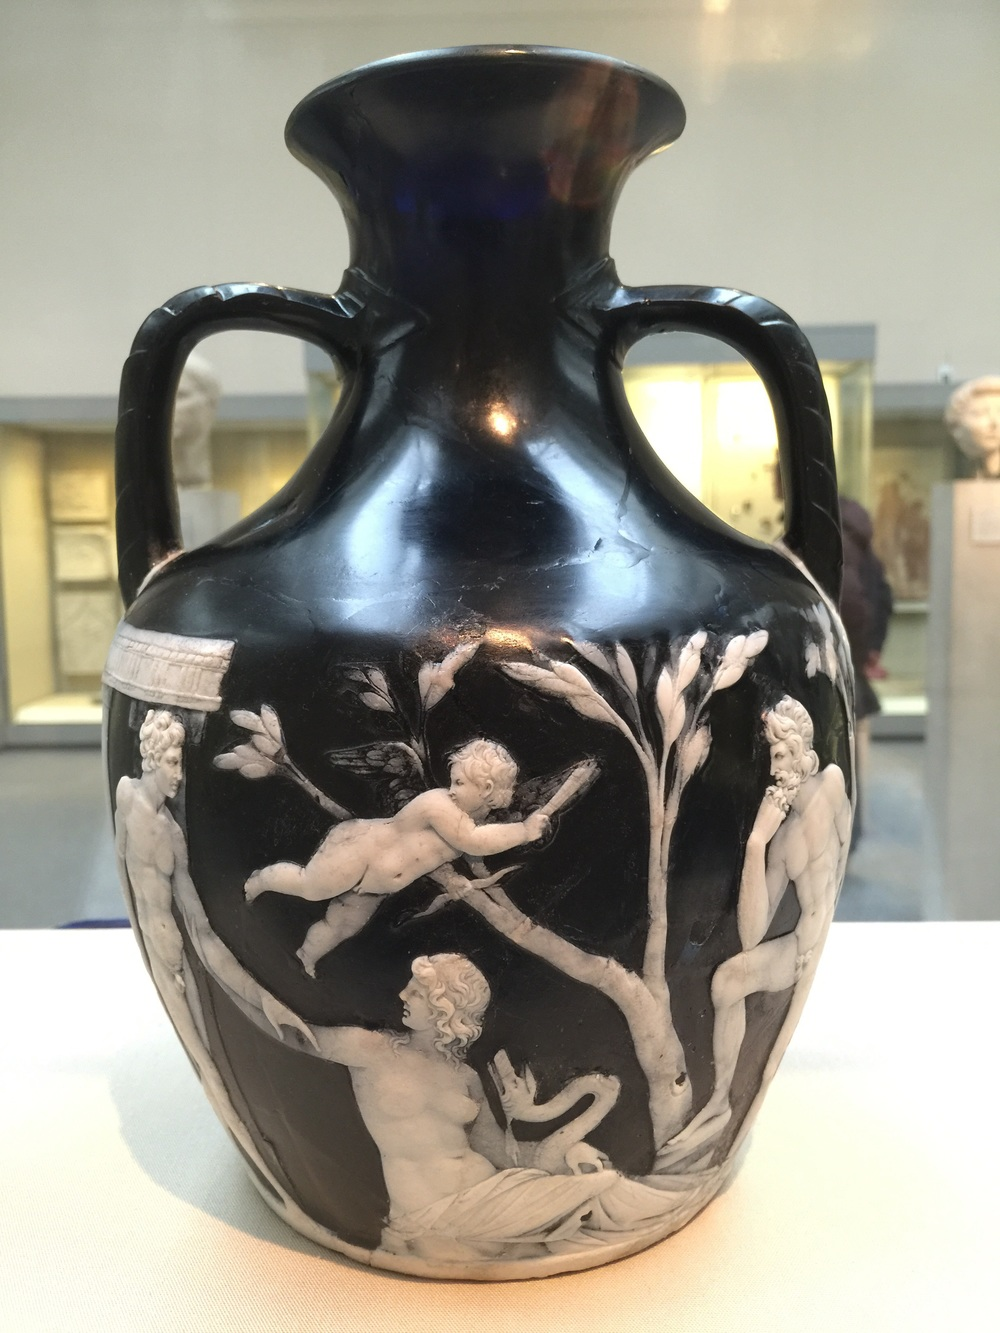 The Portland Vase   at the British Museum